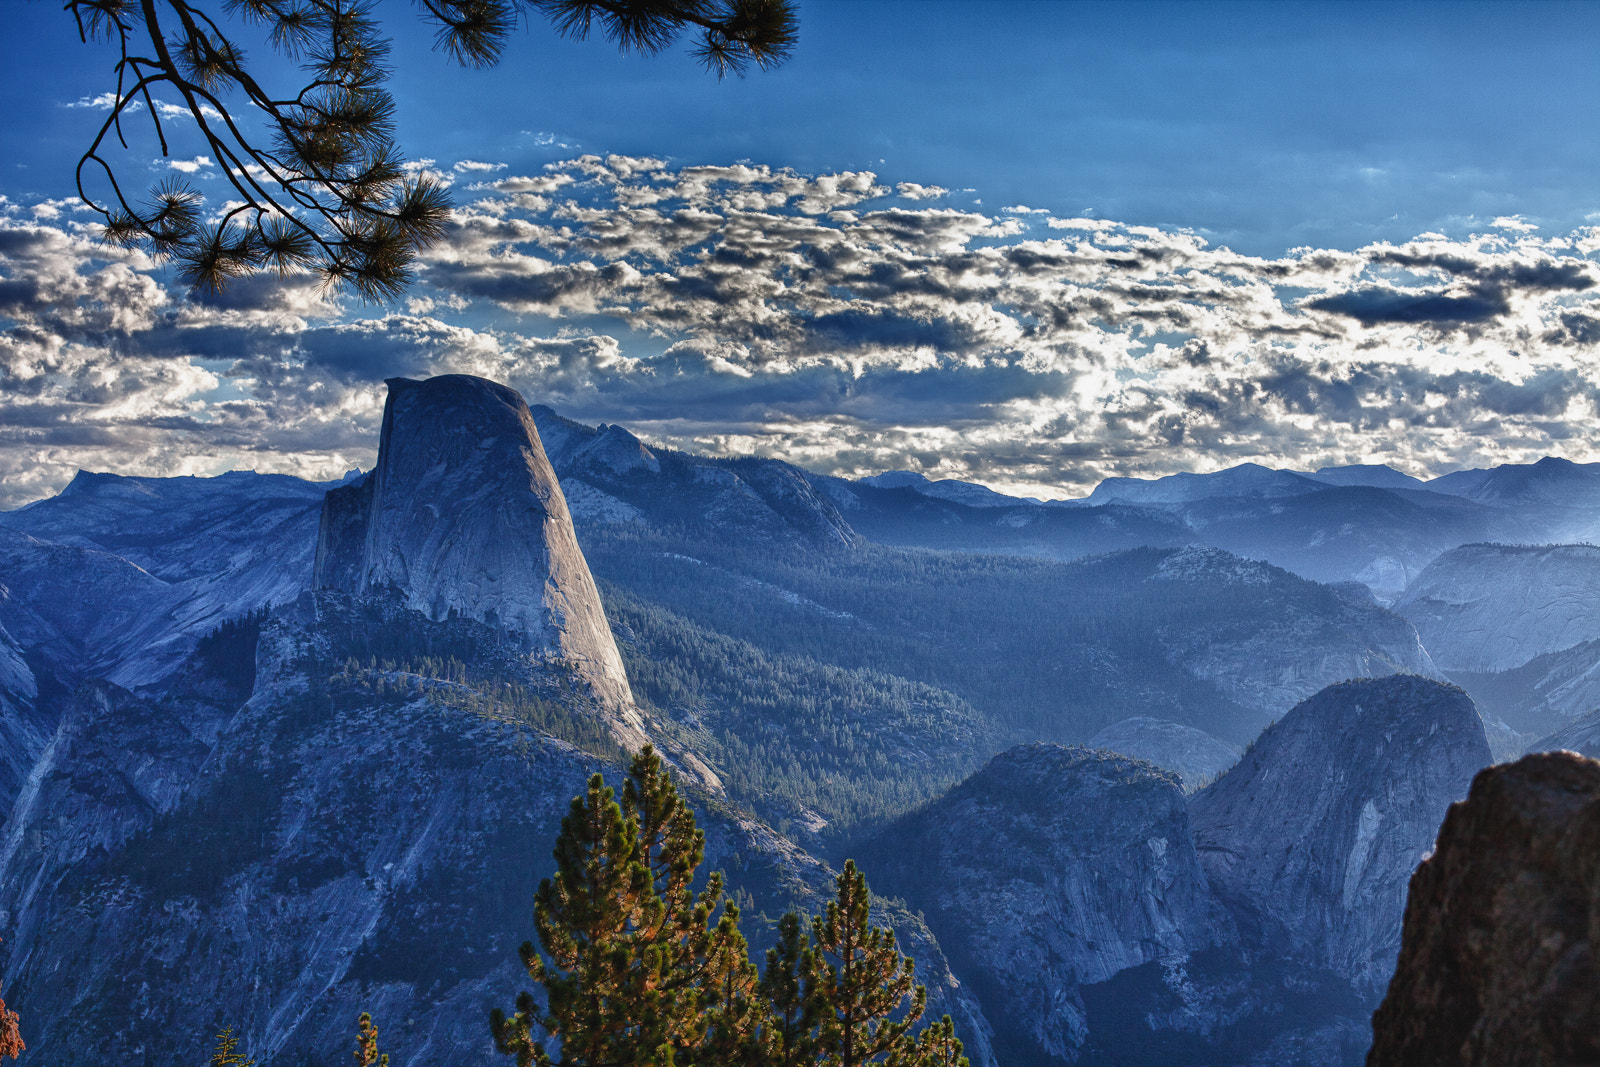 Photograph Daybreak at Yosemite by Shane Lund on 500px